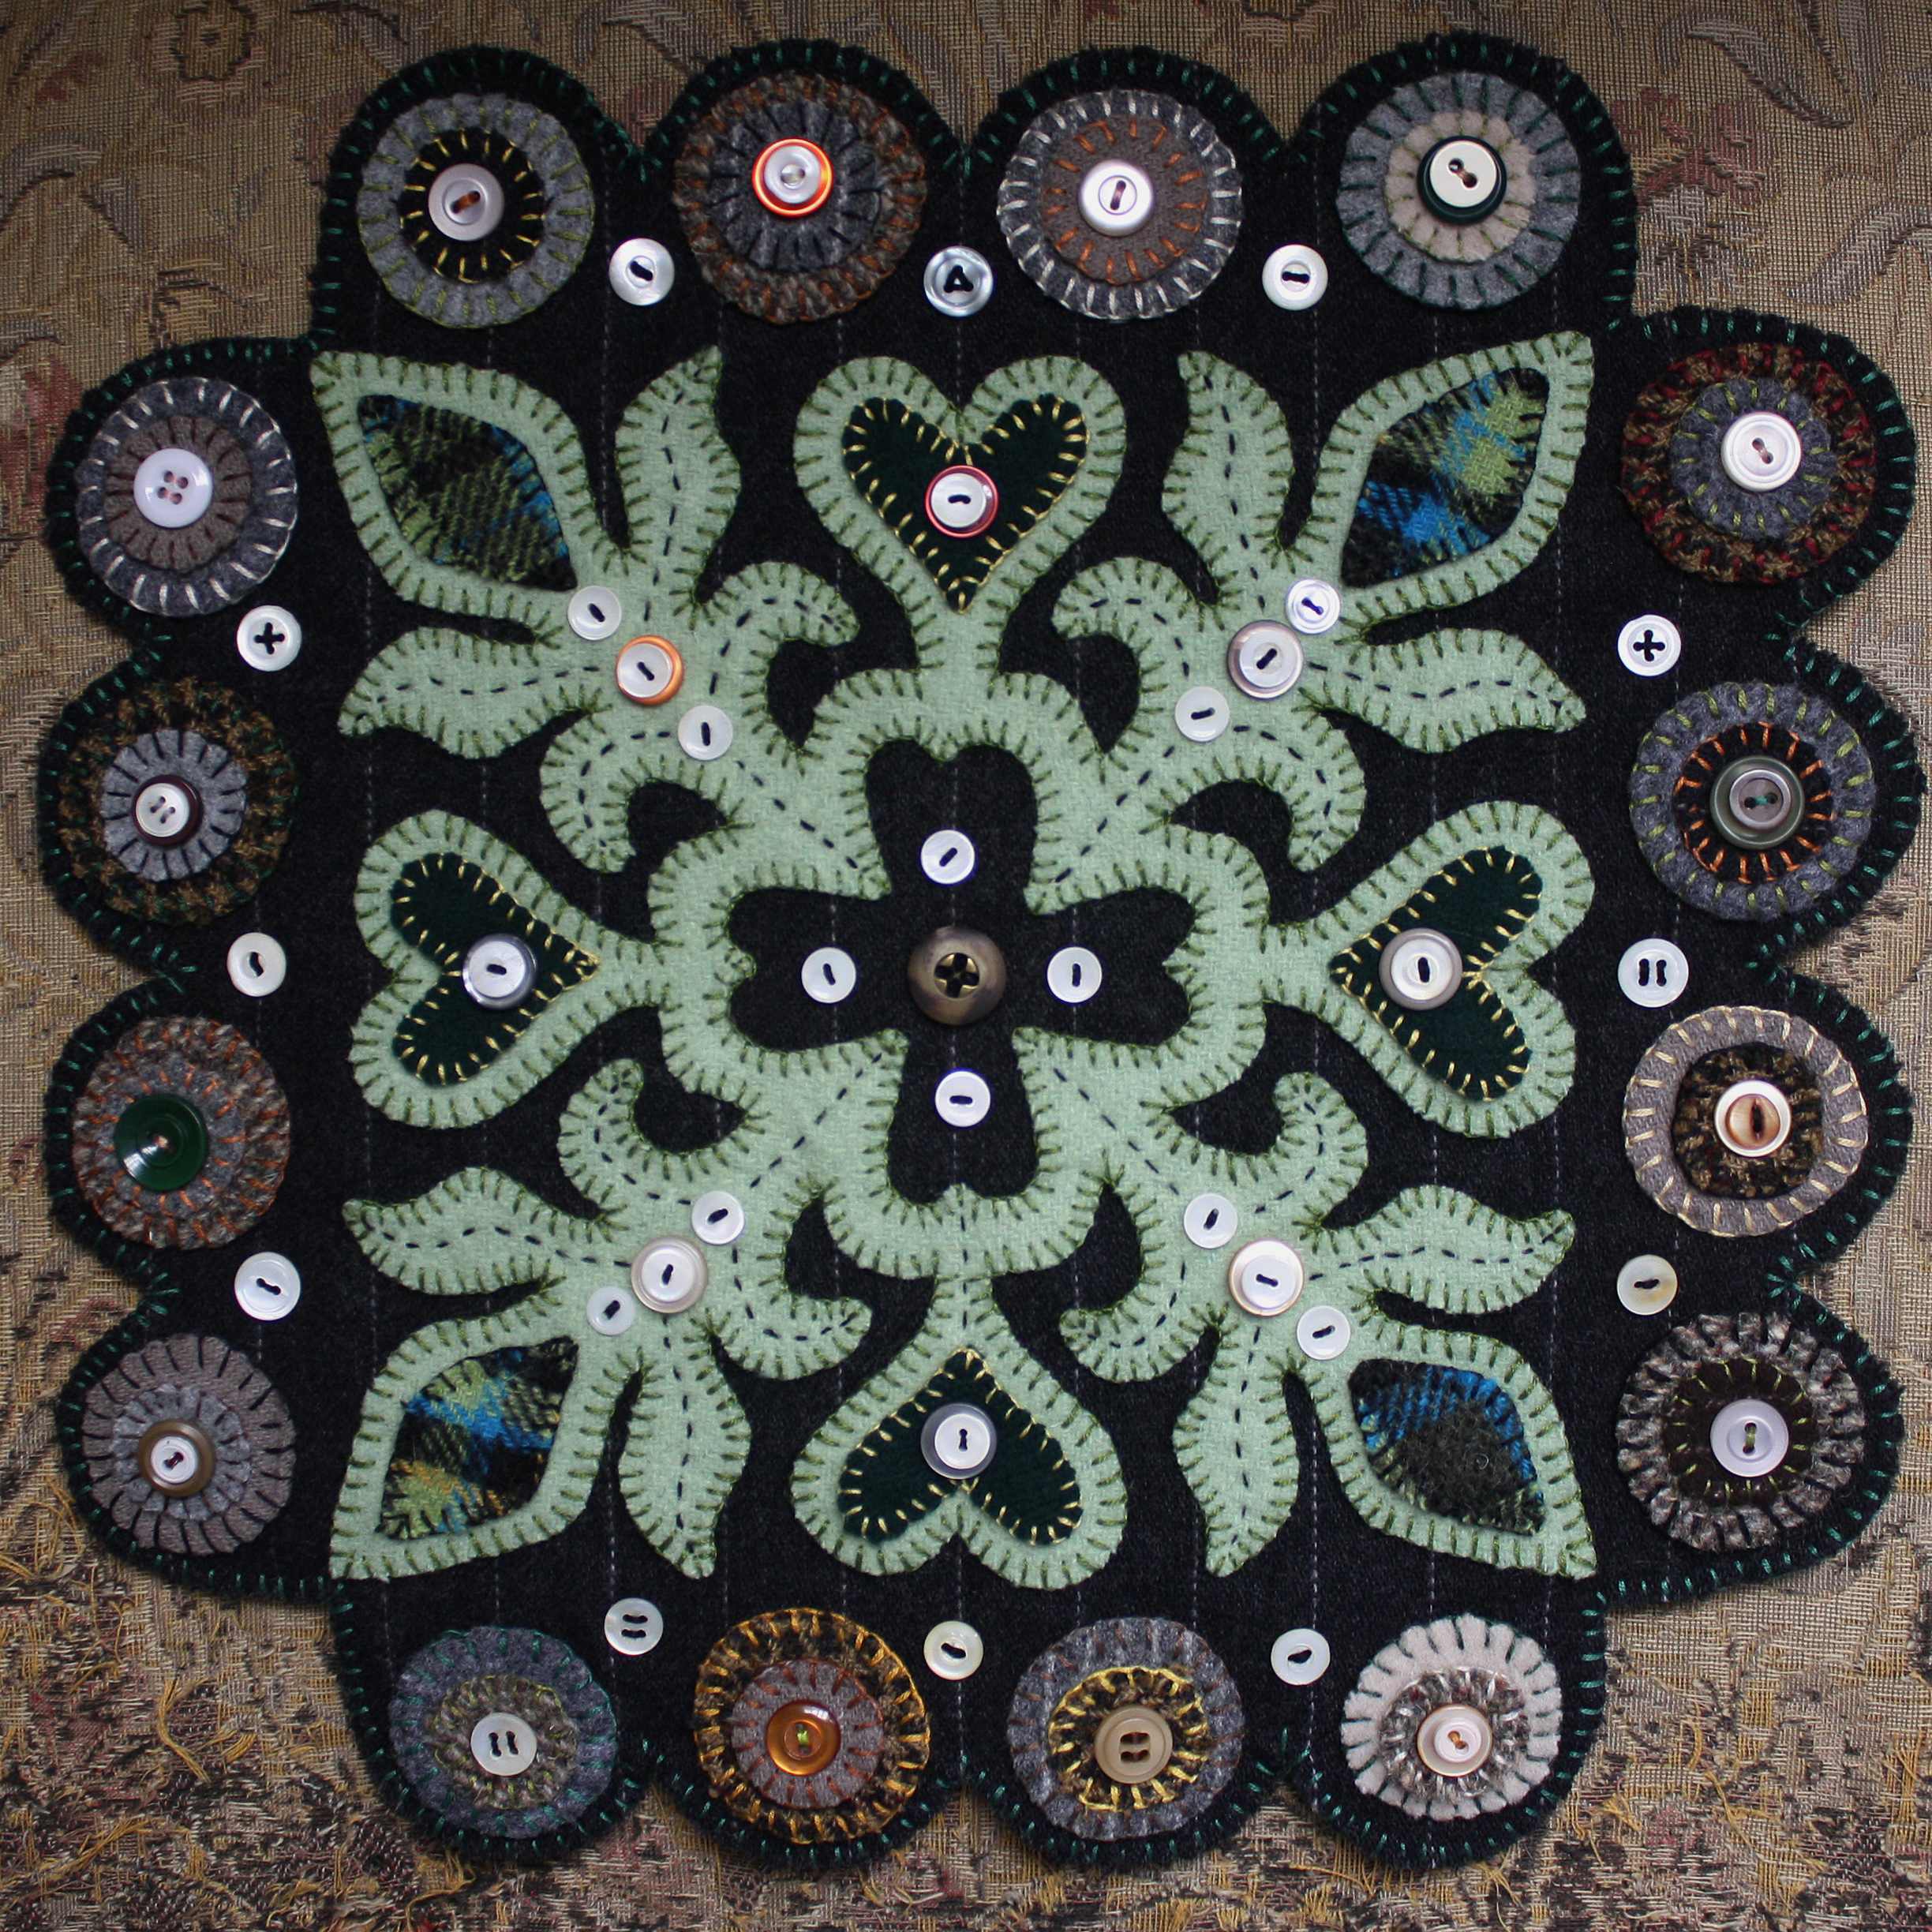 Quality arts and crafts web sites with free patterns.